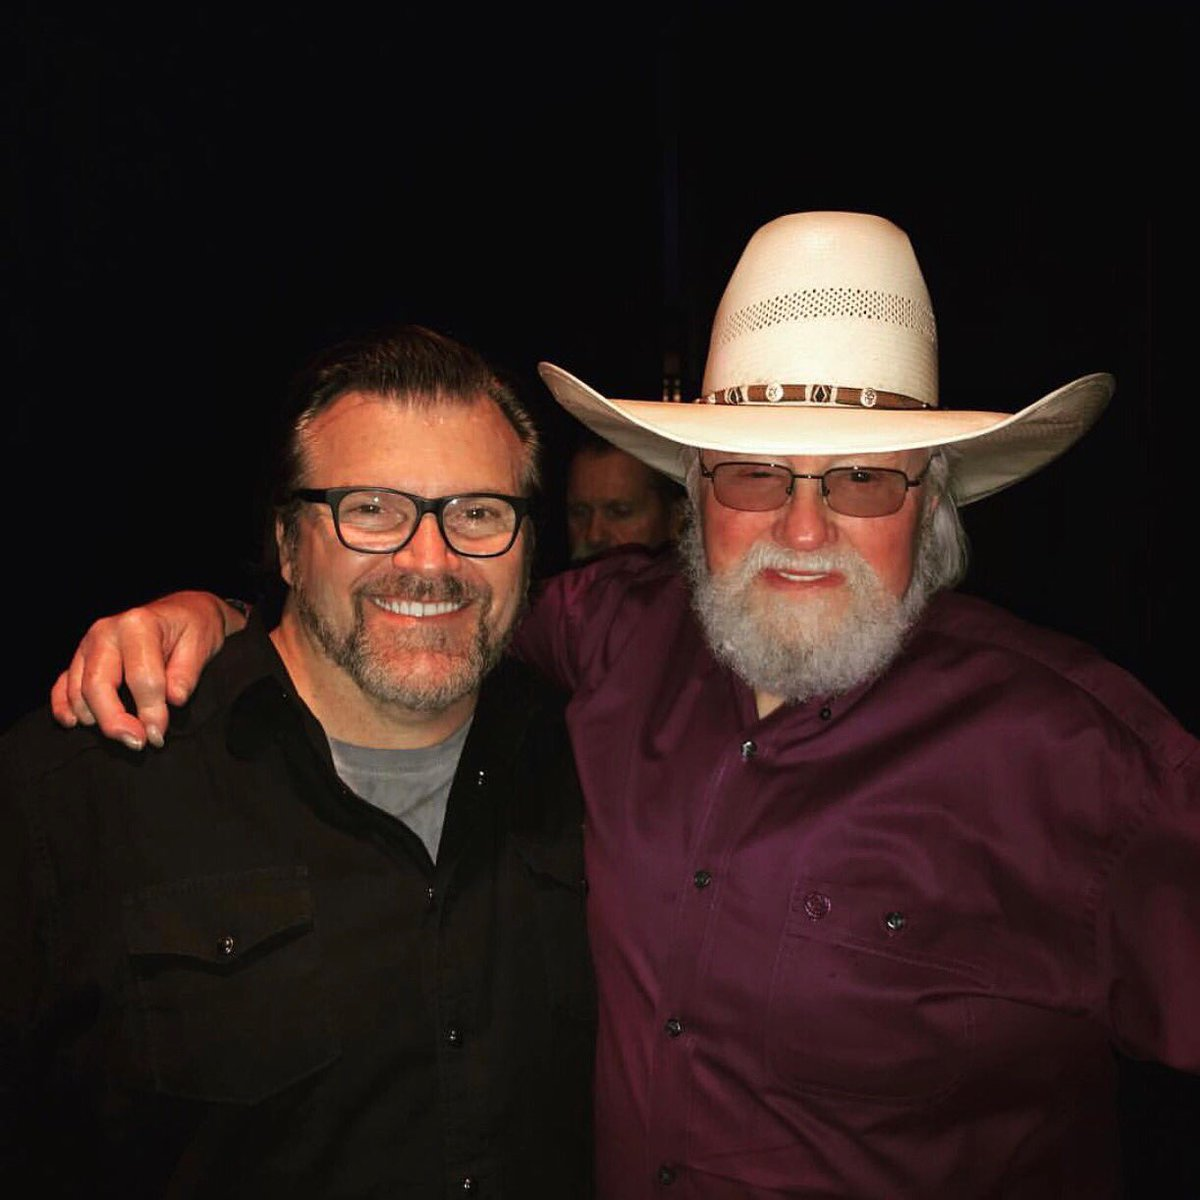 REPOST: @russlee | Honored to play with NewSong at a benefit with Charlie Daniels for the Waltrip Foundation! #nascar #MRO <br>http://pic.twitter.com/fgsDjYvuIR